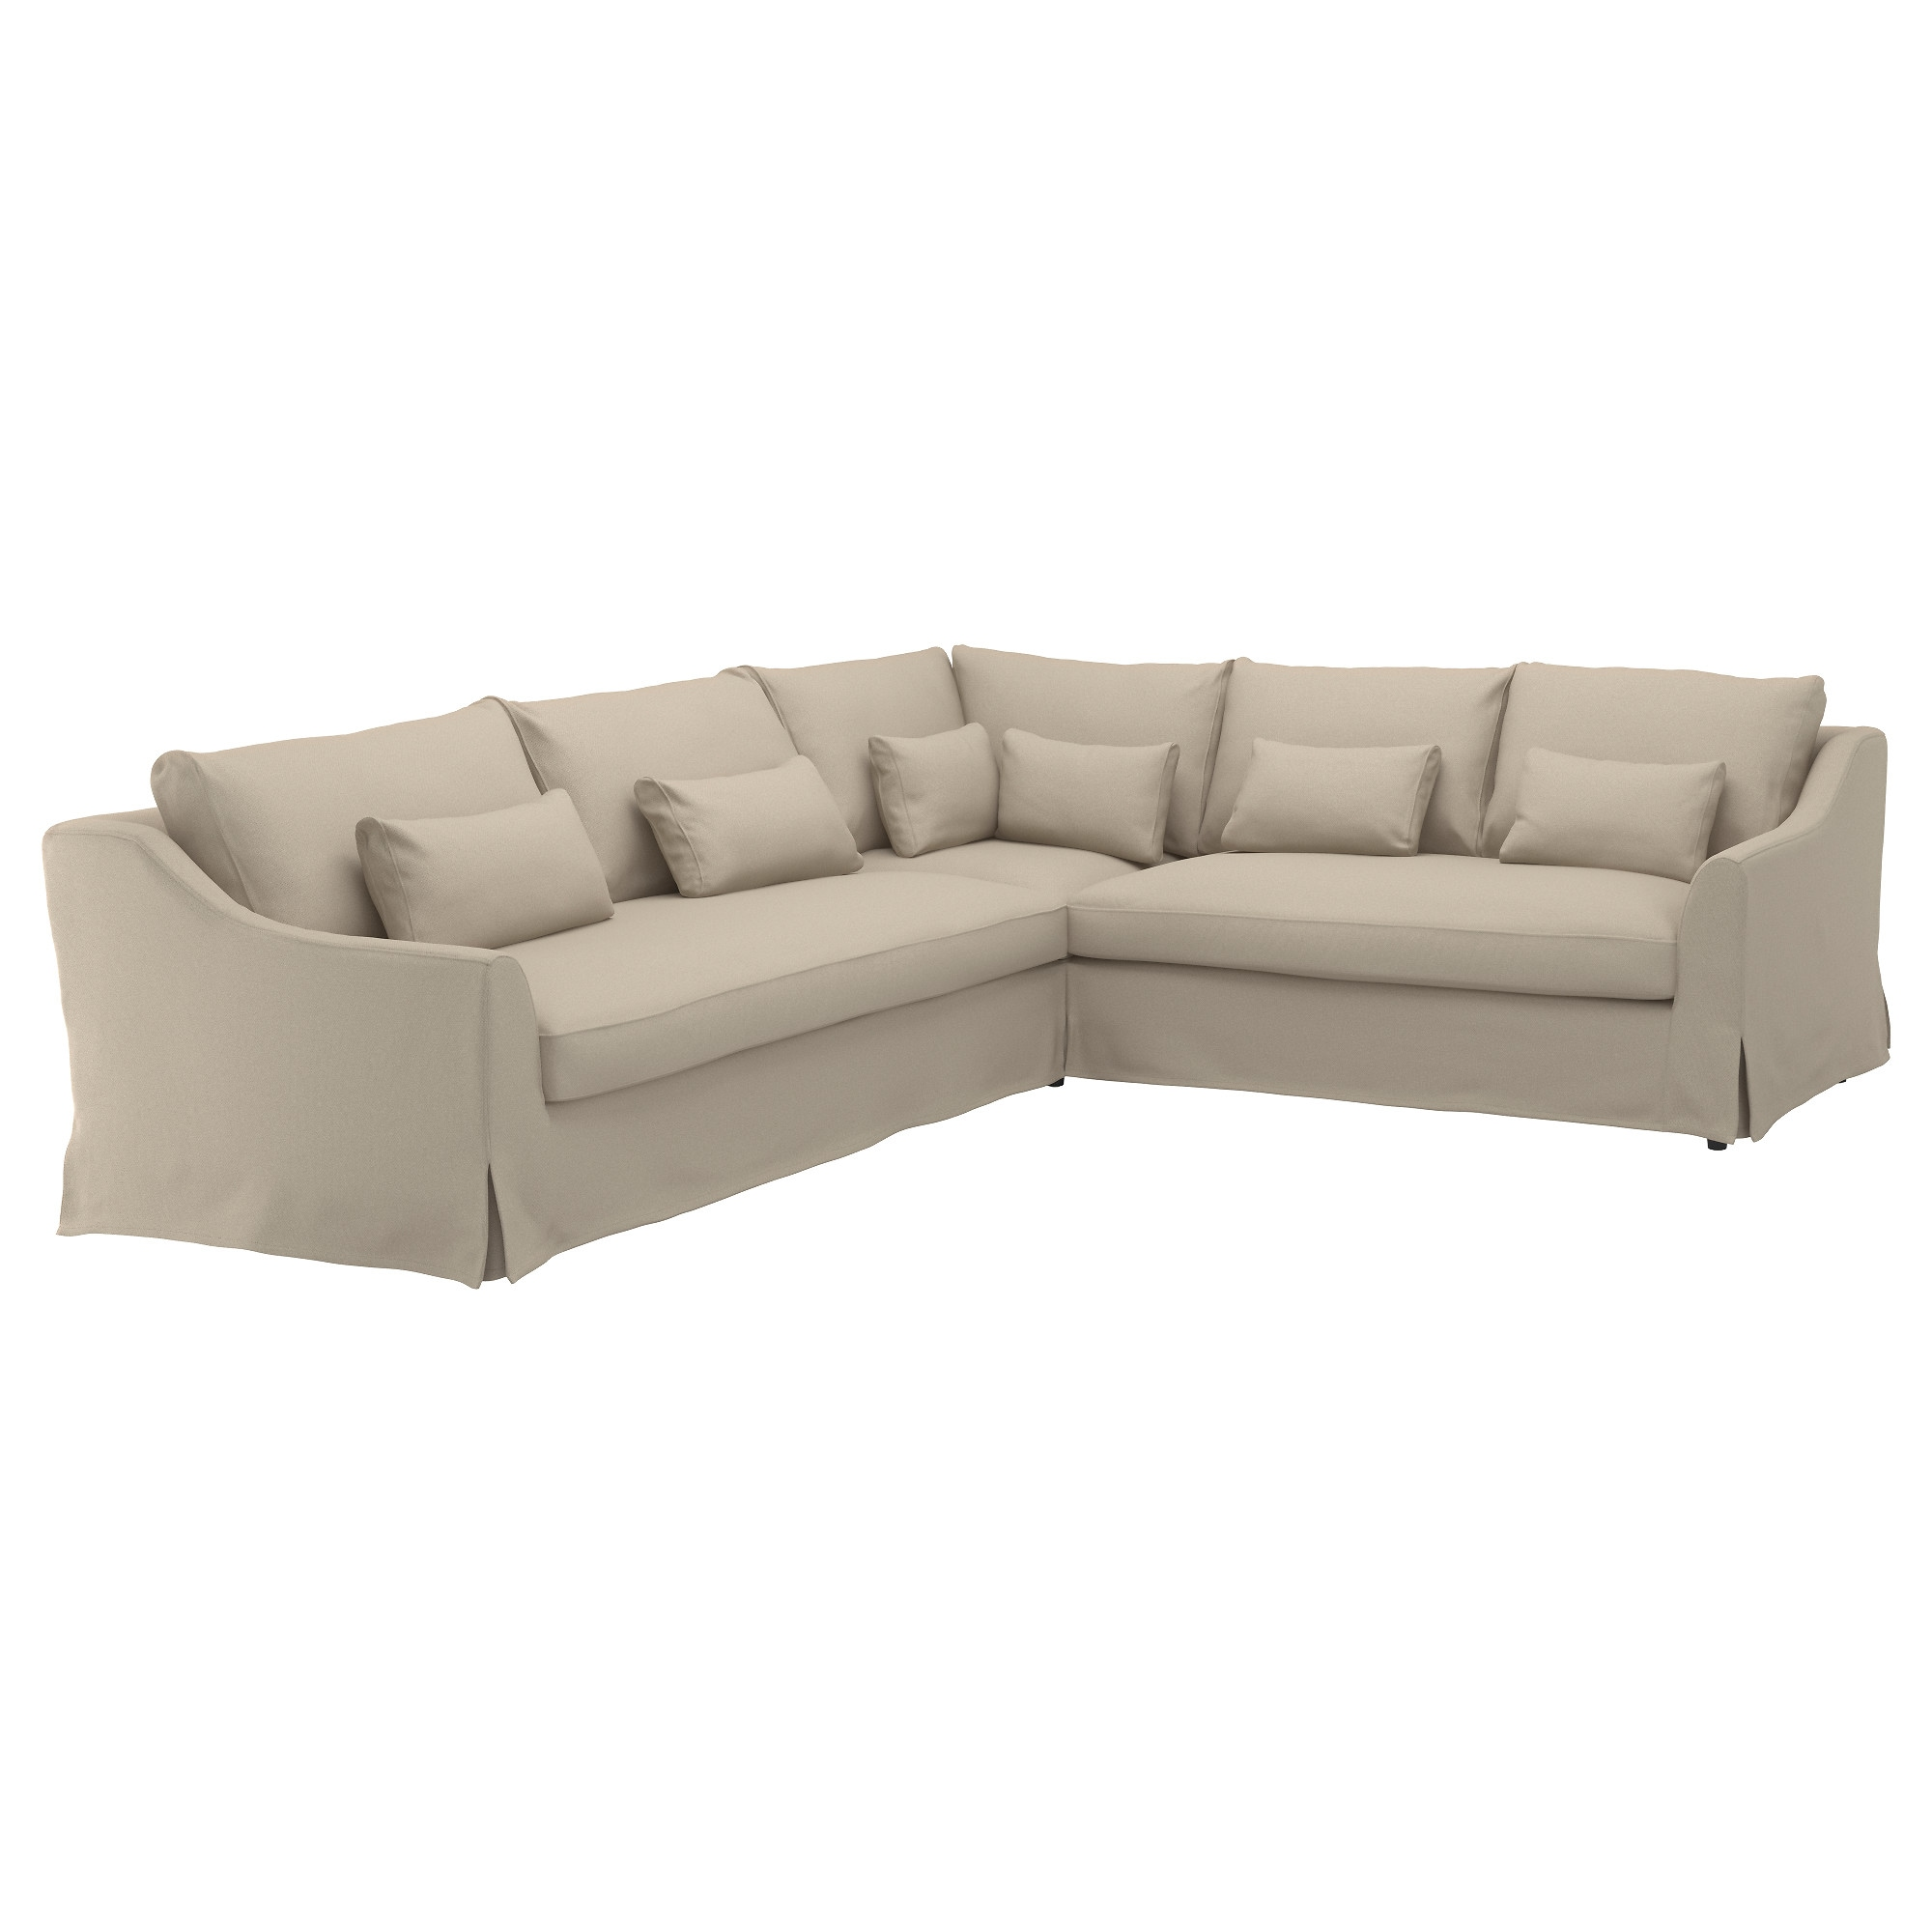 Sectional,5 seat/sofa left FÄRLÖV Flodafors beige